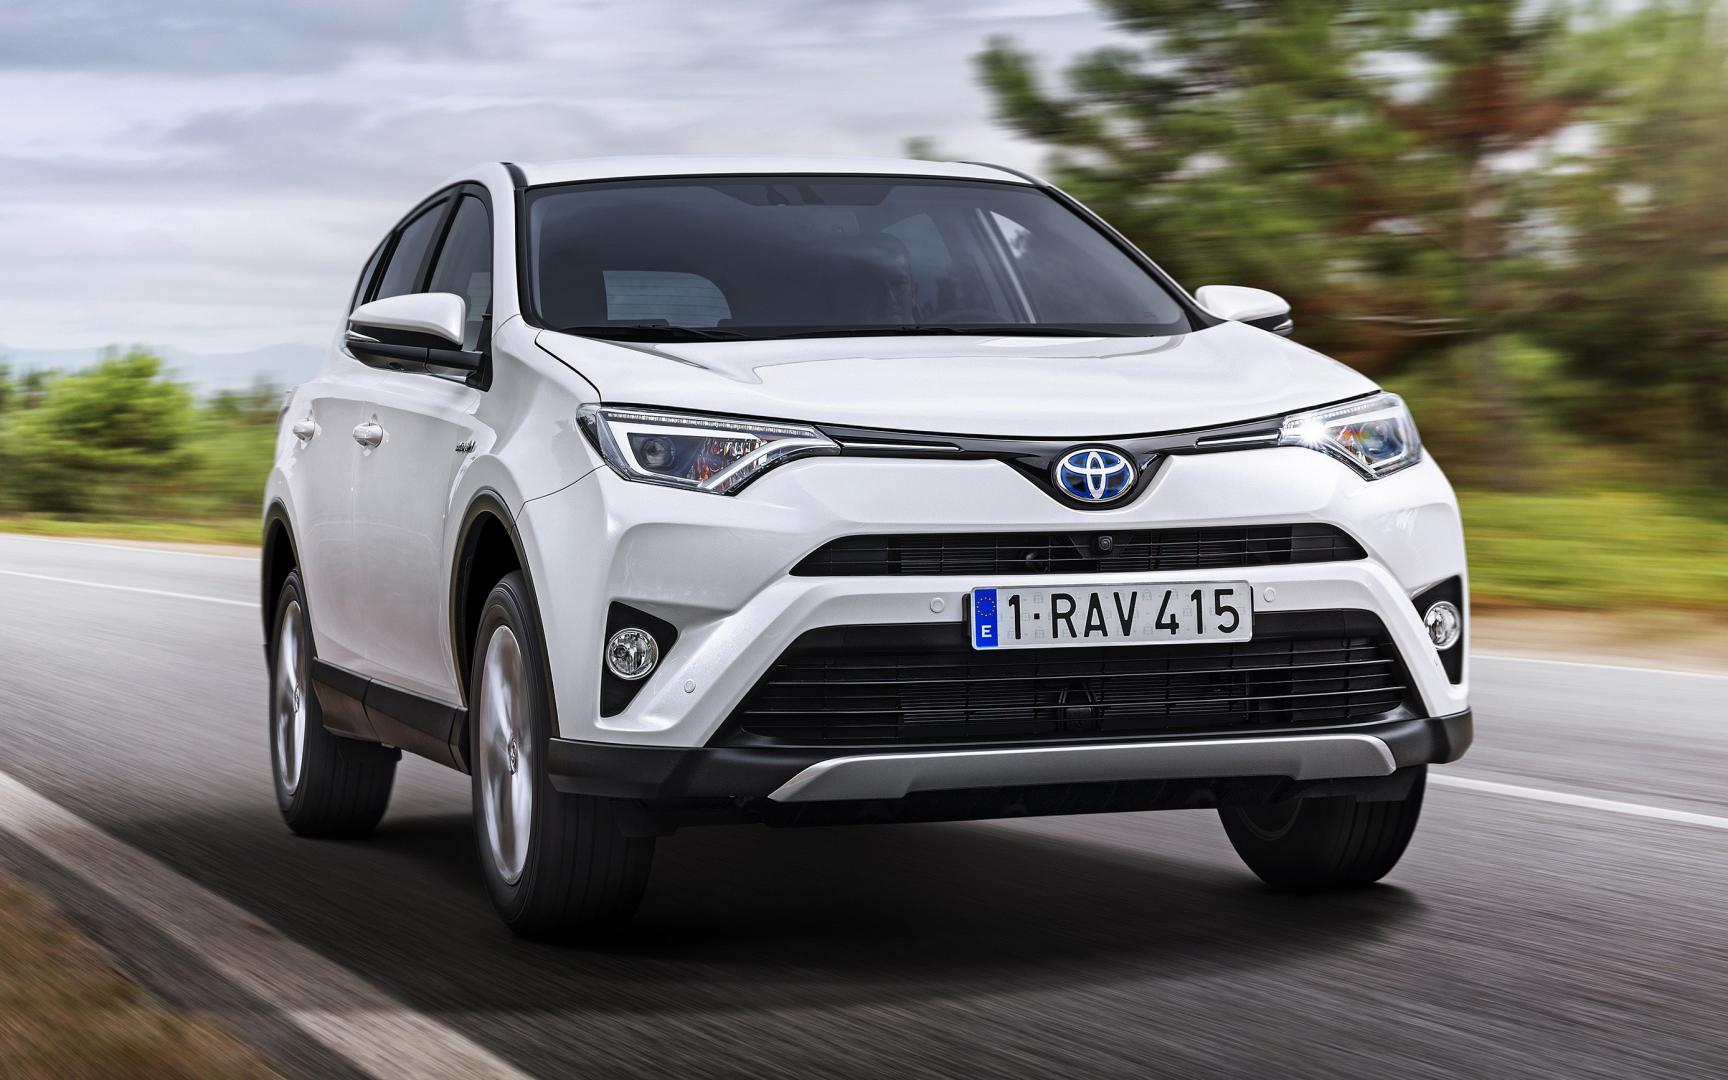 toyota rav4 hybrid 2016 autotest trouwe hond. Black Bedroom Furniture Sets. Home Design Ideas